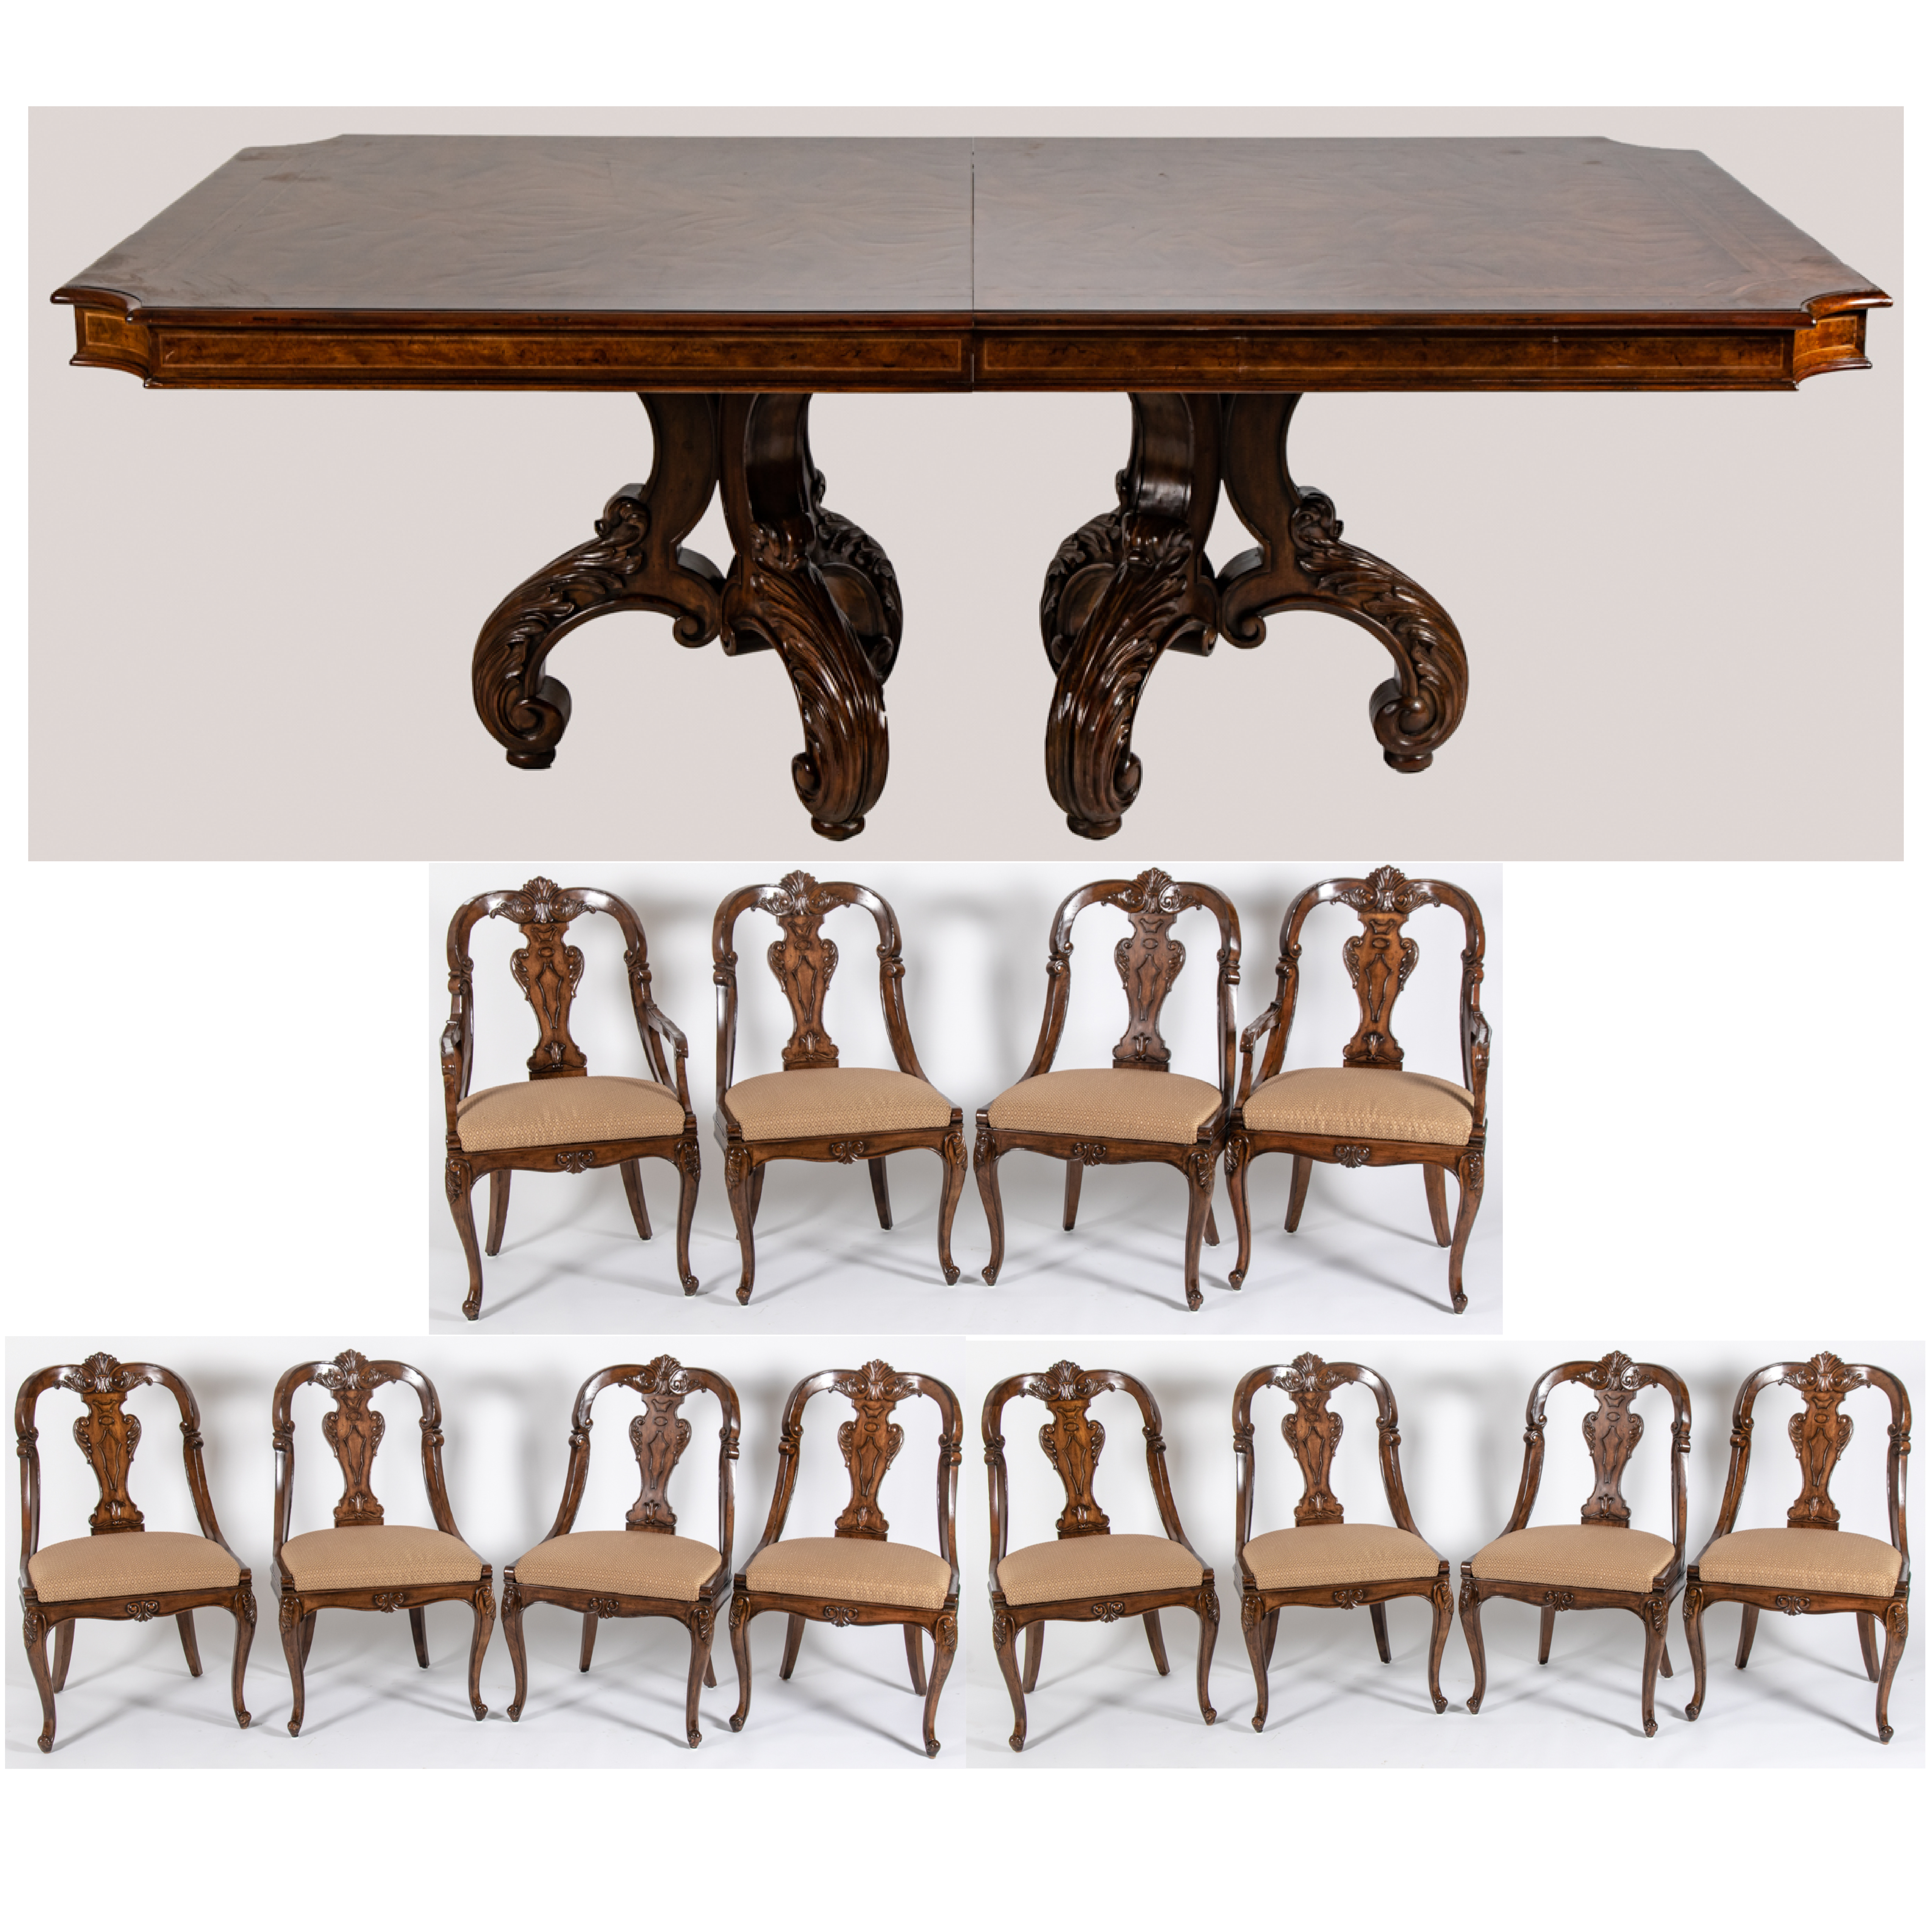 Awe Inspiring Henredon Dining Table And Chairs Andrewgaddart Wooden Chair Designs For Living Room Andrewgaddartcom